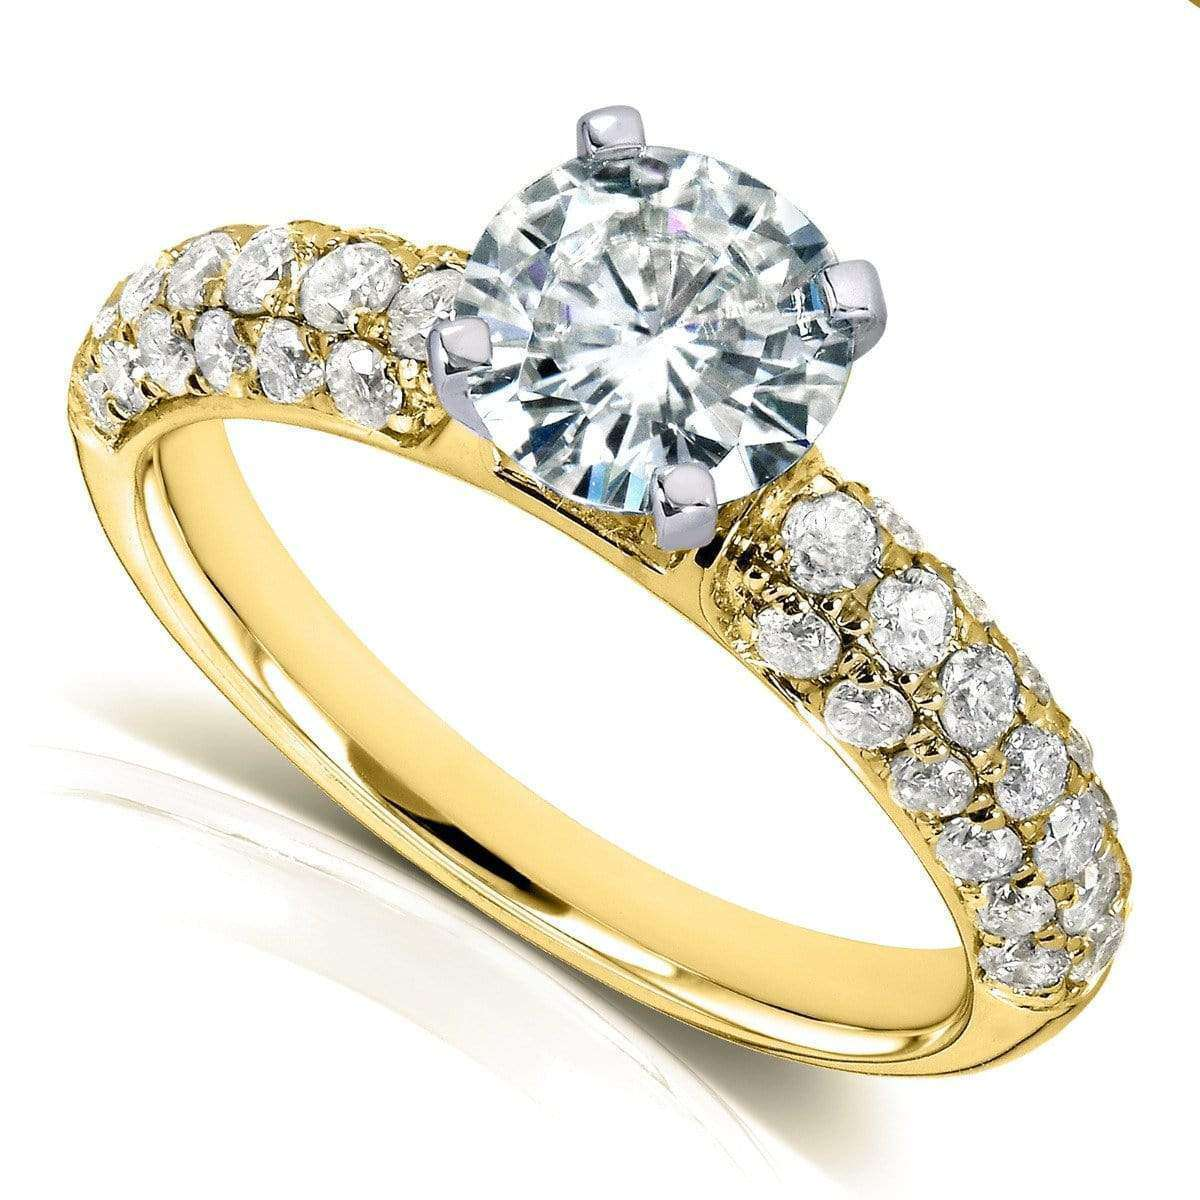 Cheap Round Moissanite Engagement Ring with Micro-Pavé Diamond 1 3/4 CTW 14k Gold - yellow-gold 8.5